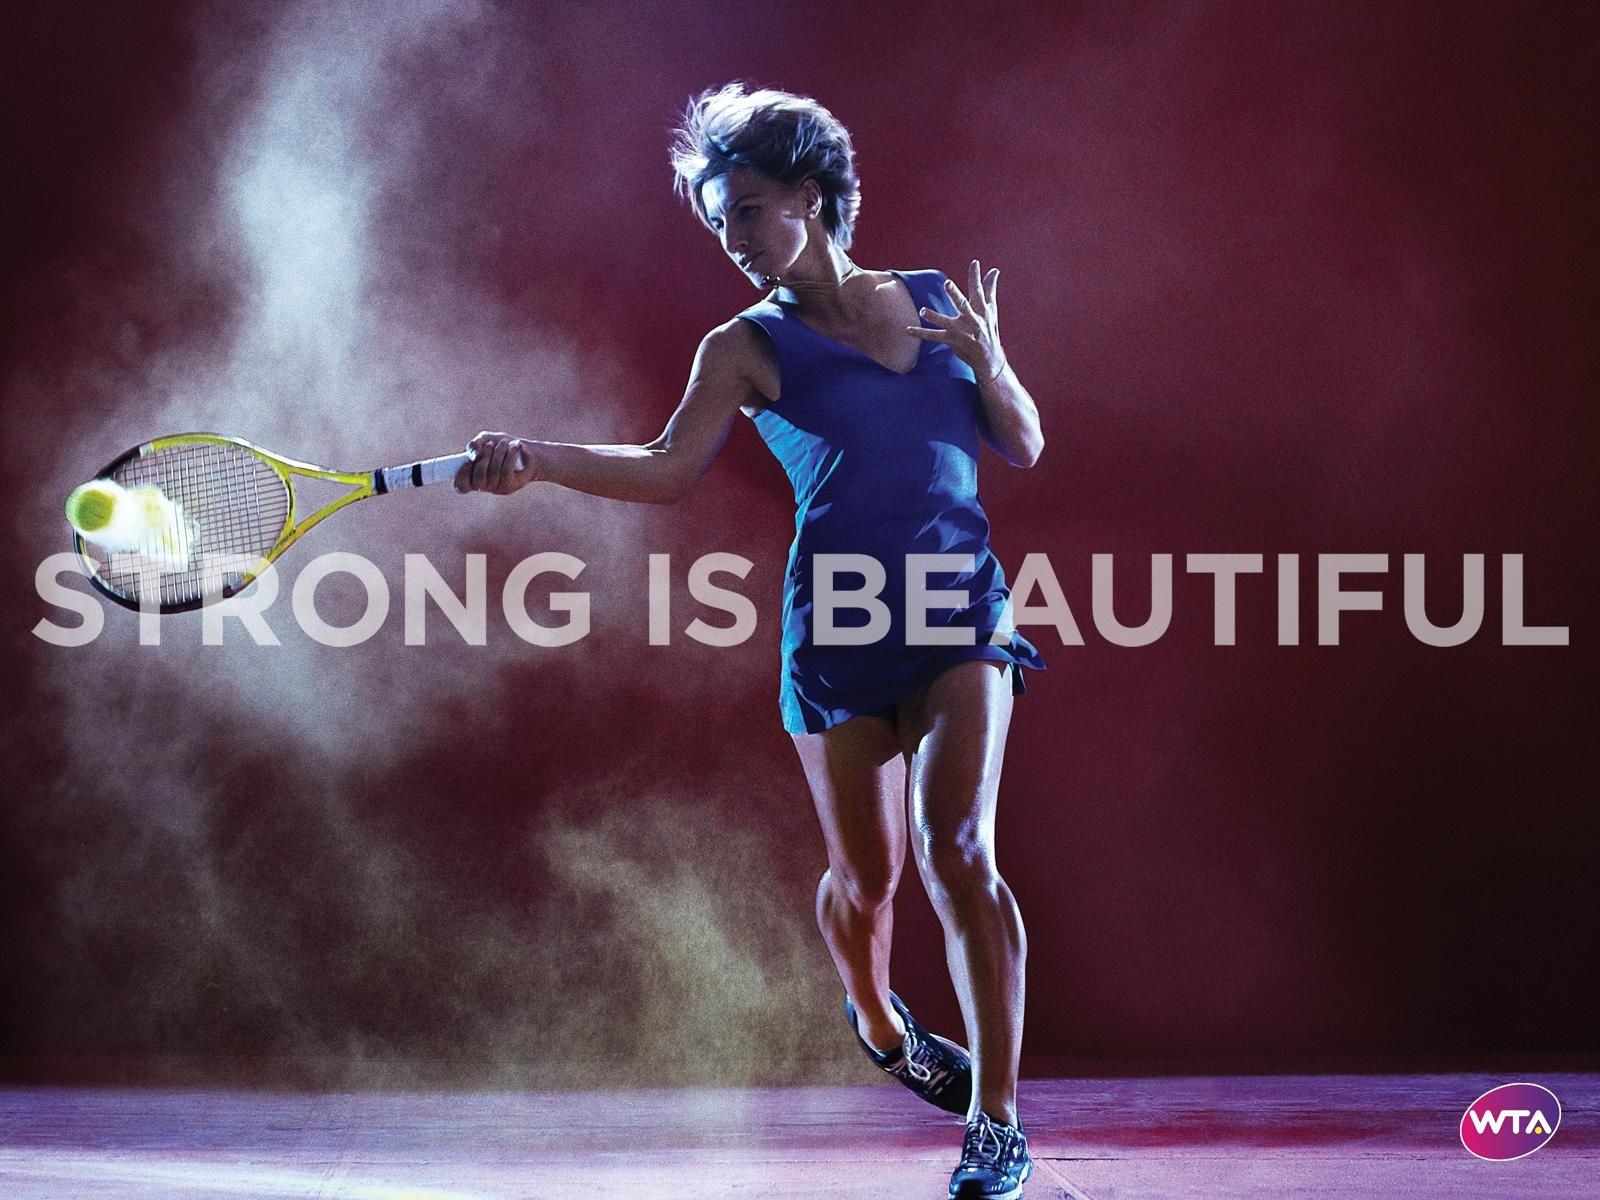 strong is beautiful - what Liana was talking about WTA campaign